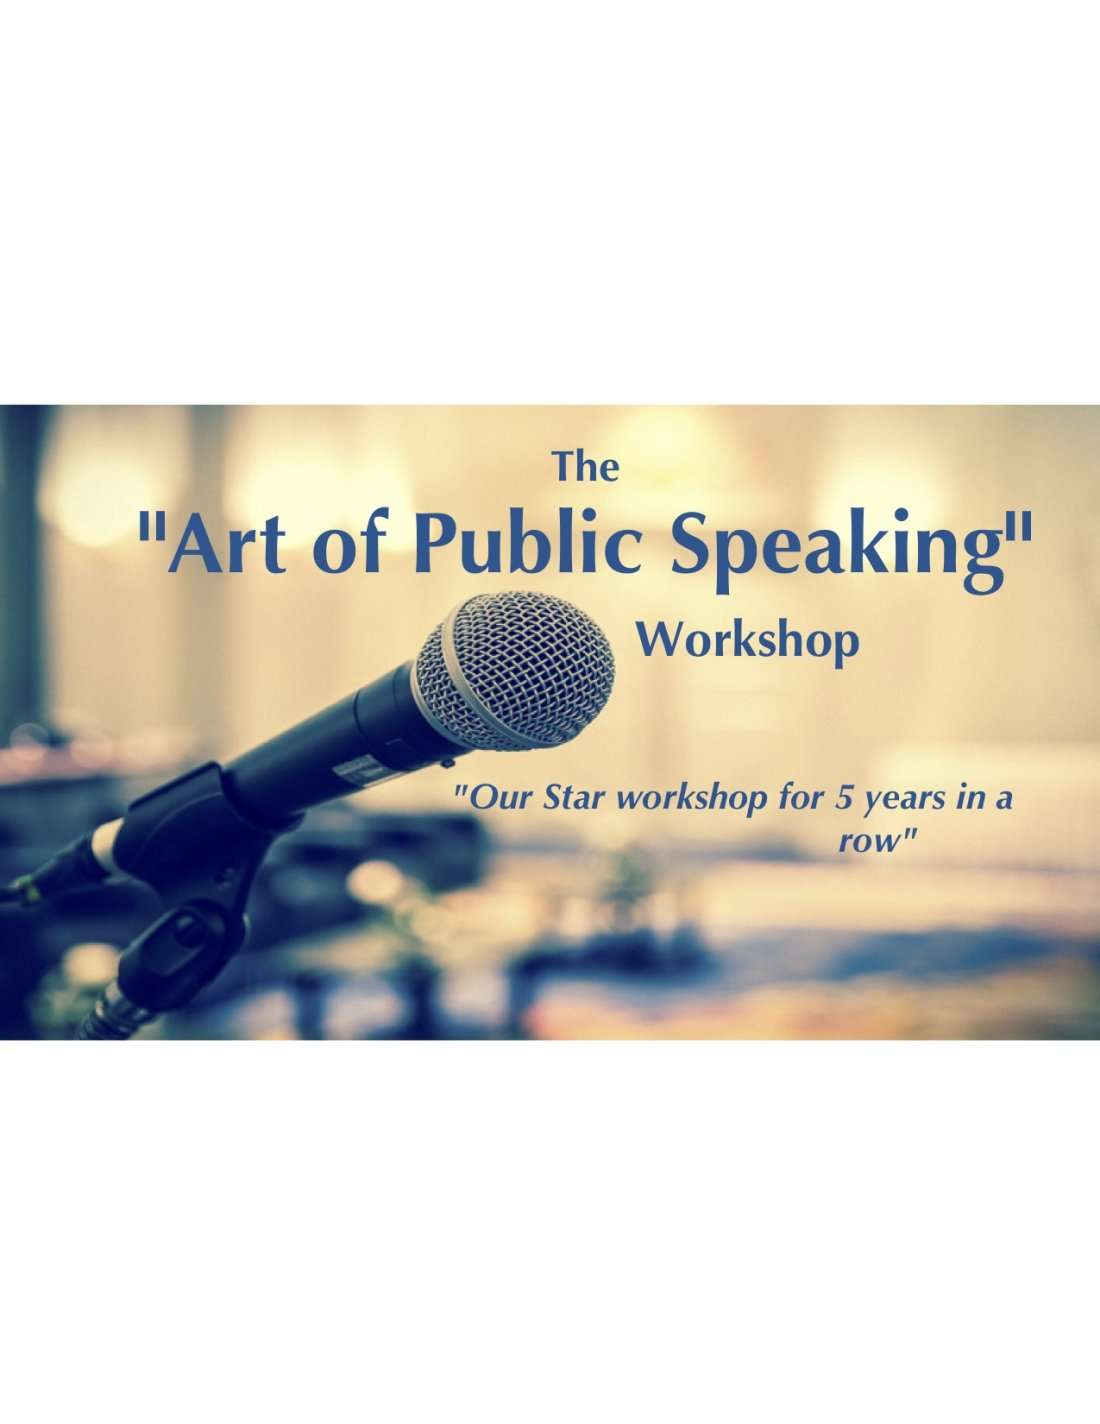 The Art of Public Speaking Workshop - by Excellence First Leadership Academy